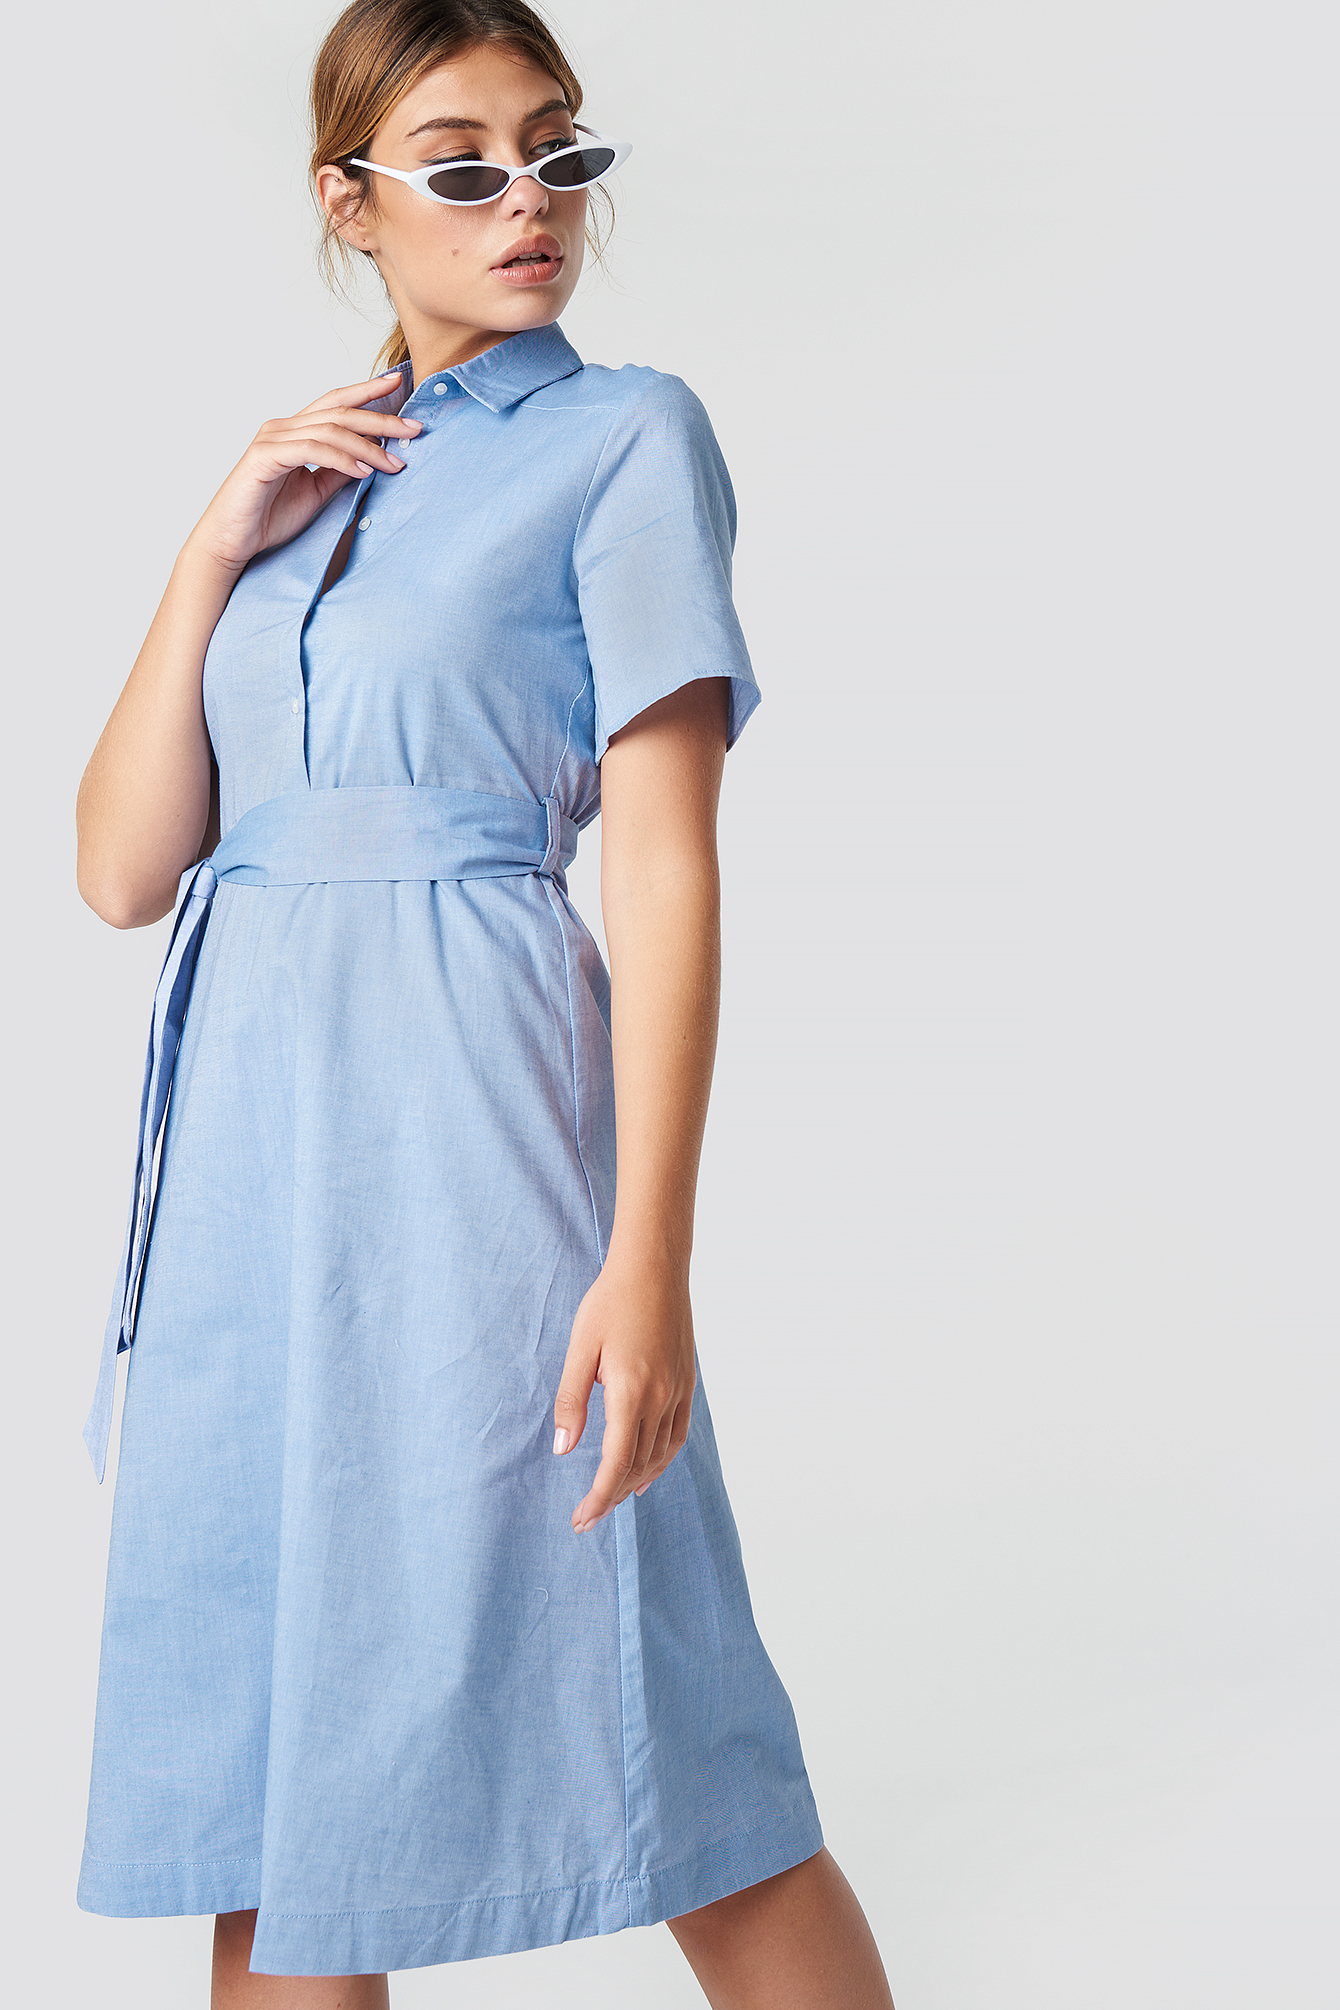 Sky Blue Carpas Dress